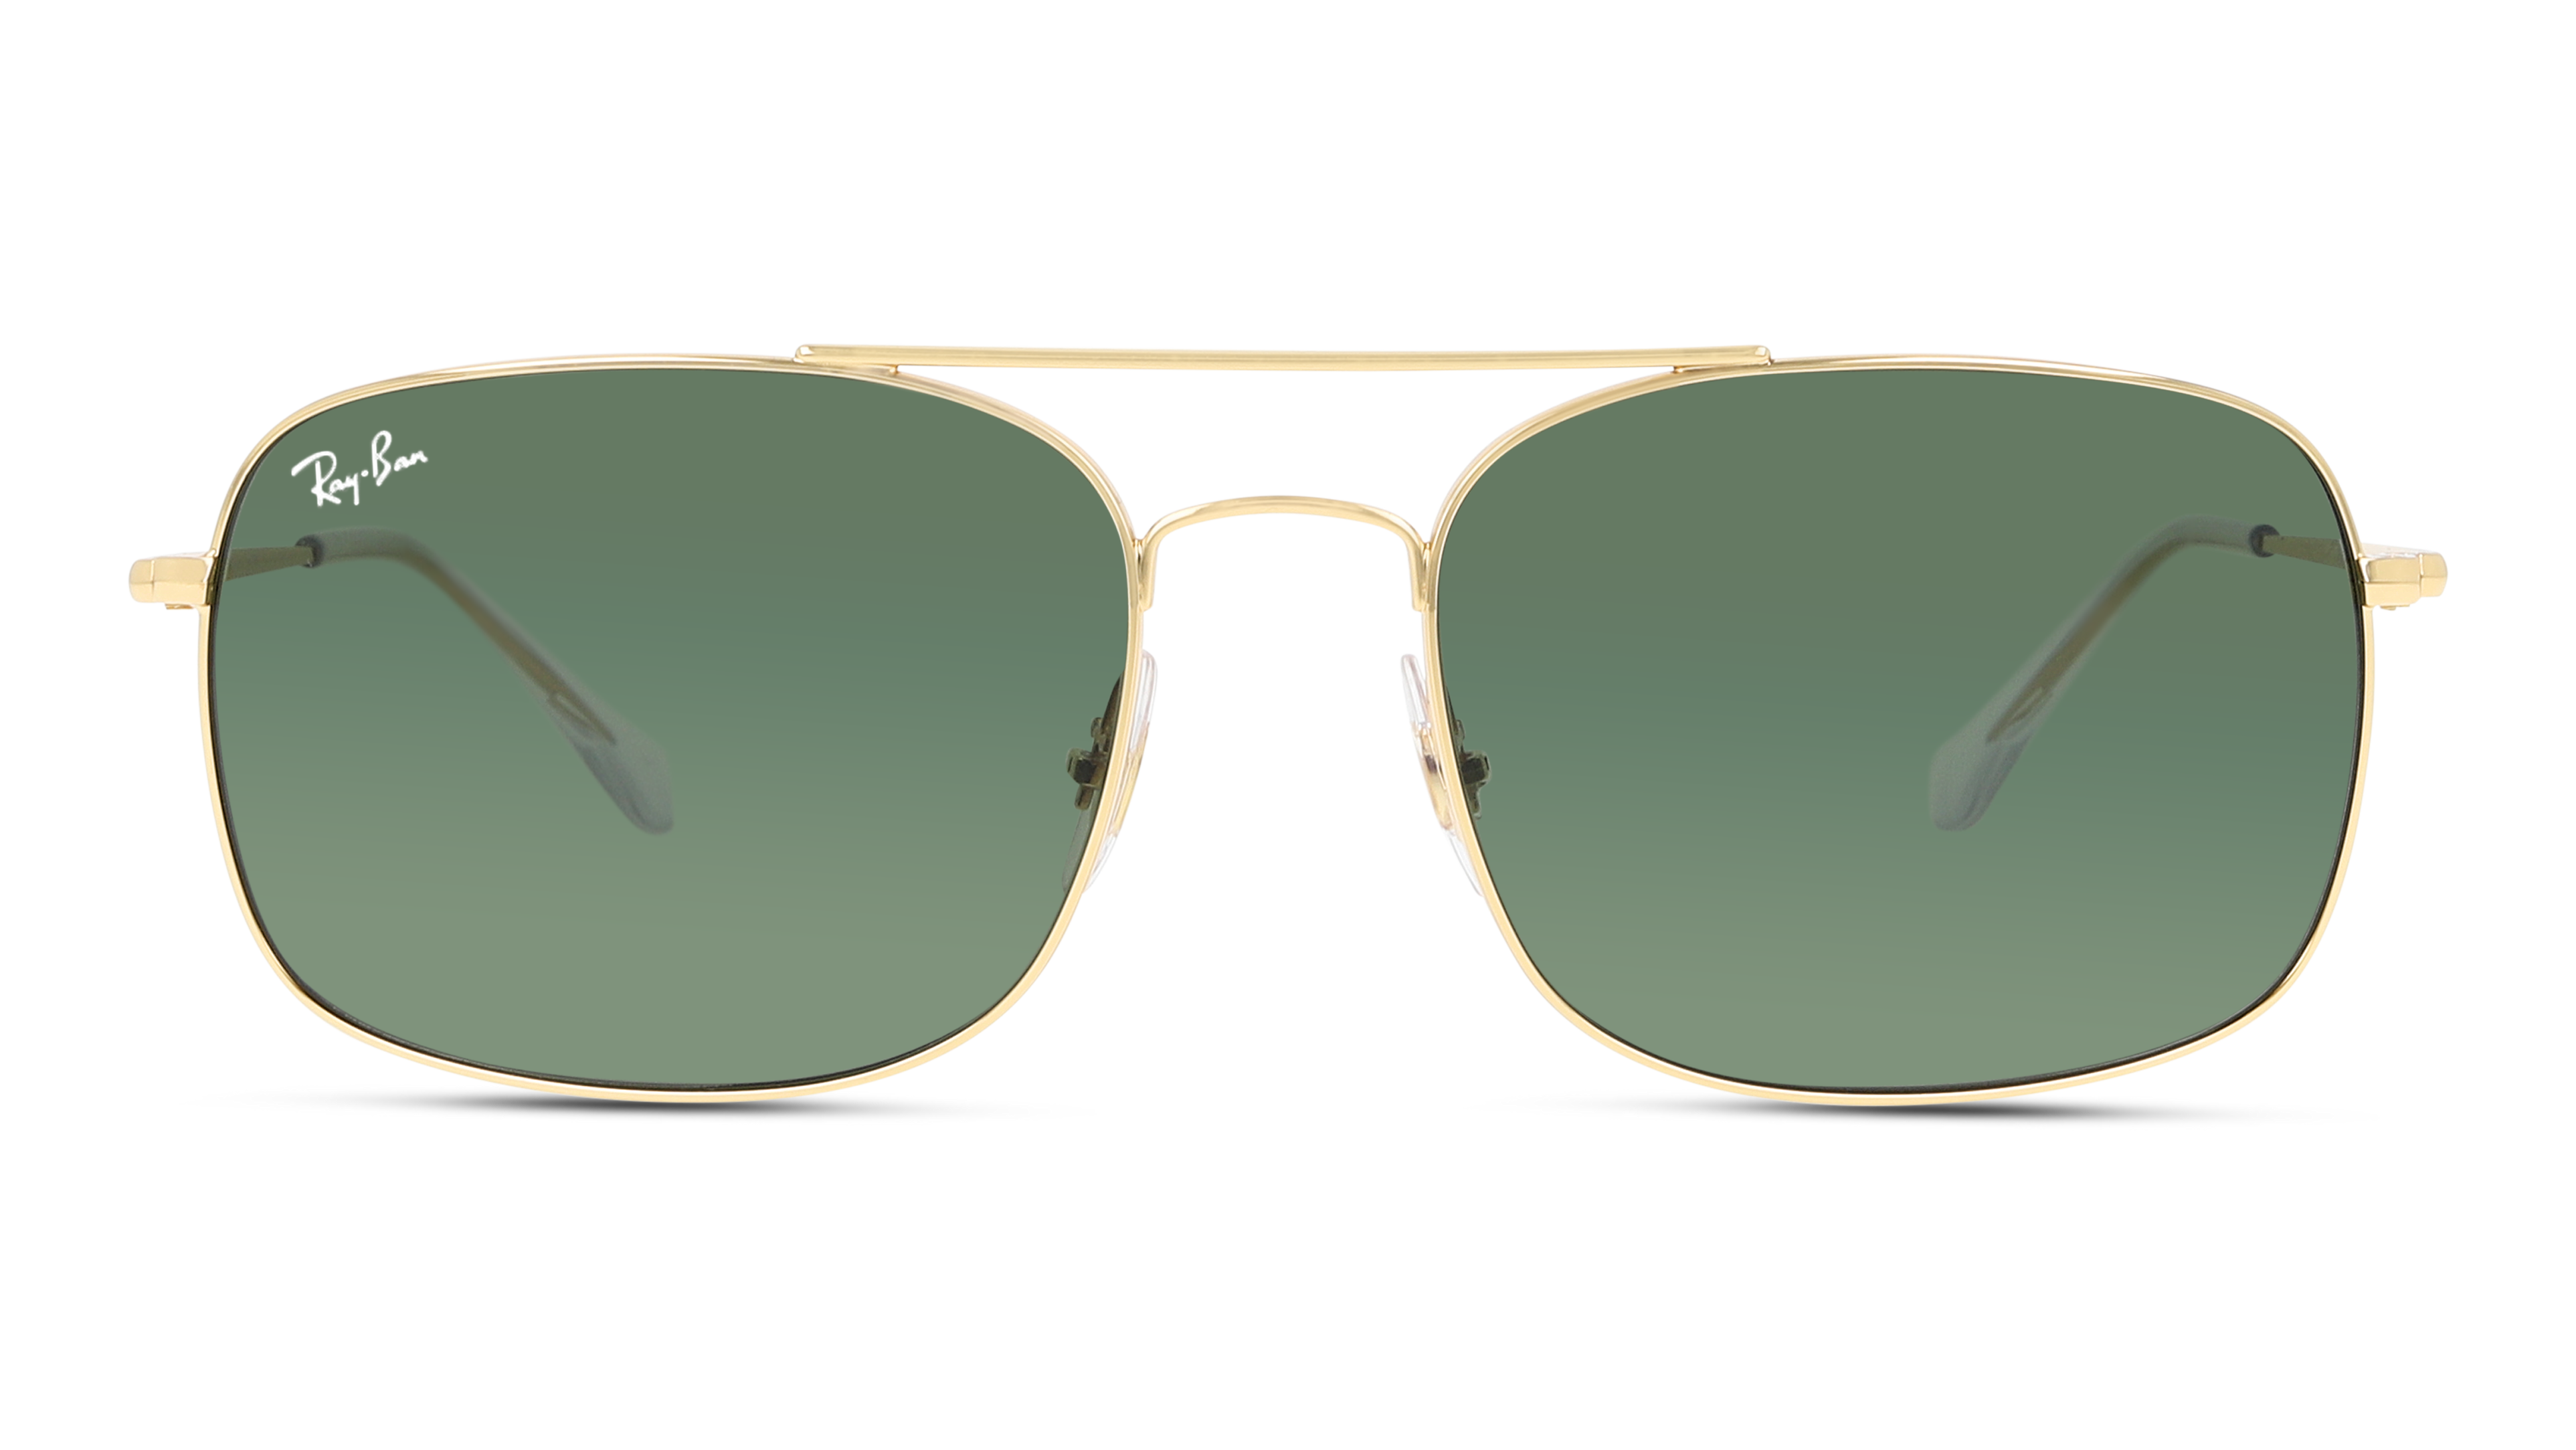 Front Ray-Ban Ray-Ban 0RB3611 001/31 60/18 Goud/Groen